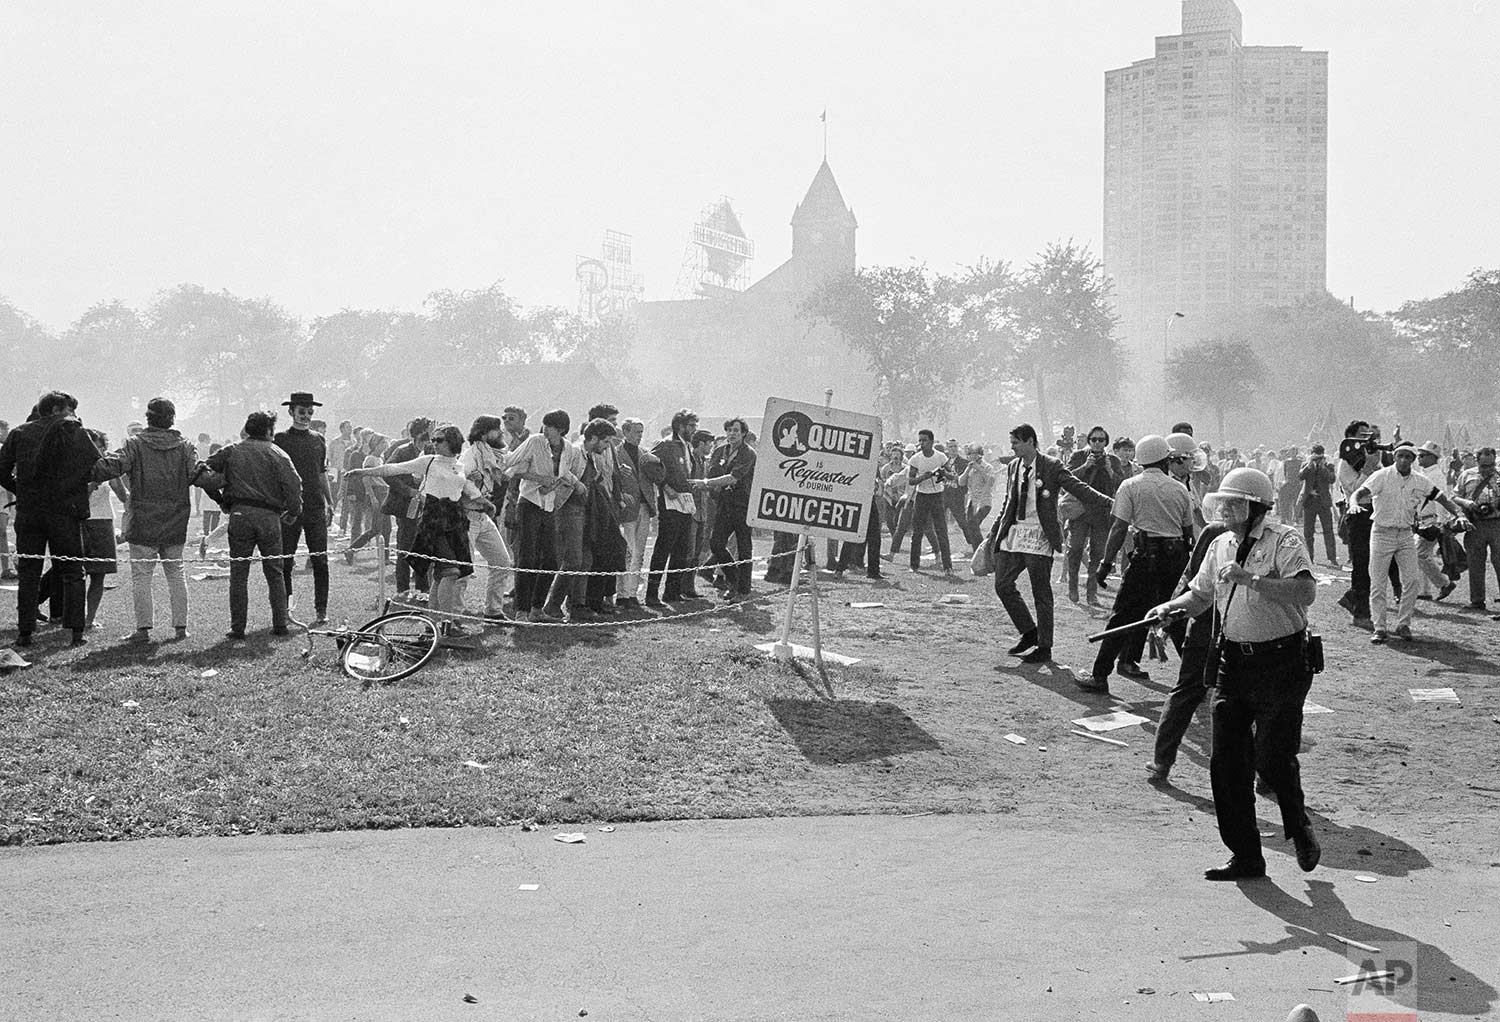 Club-wielding Chicago police move against anti-war demonstrators massed in the city's Grant Park August 28, 1968. The clash began when officers rescued several policemen who were surrounded by the crowd while arresting a protestor. The police used clubs and tear gas and were showered with rocks, bottles and trash in return. (AP Photo).